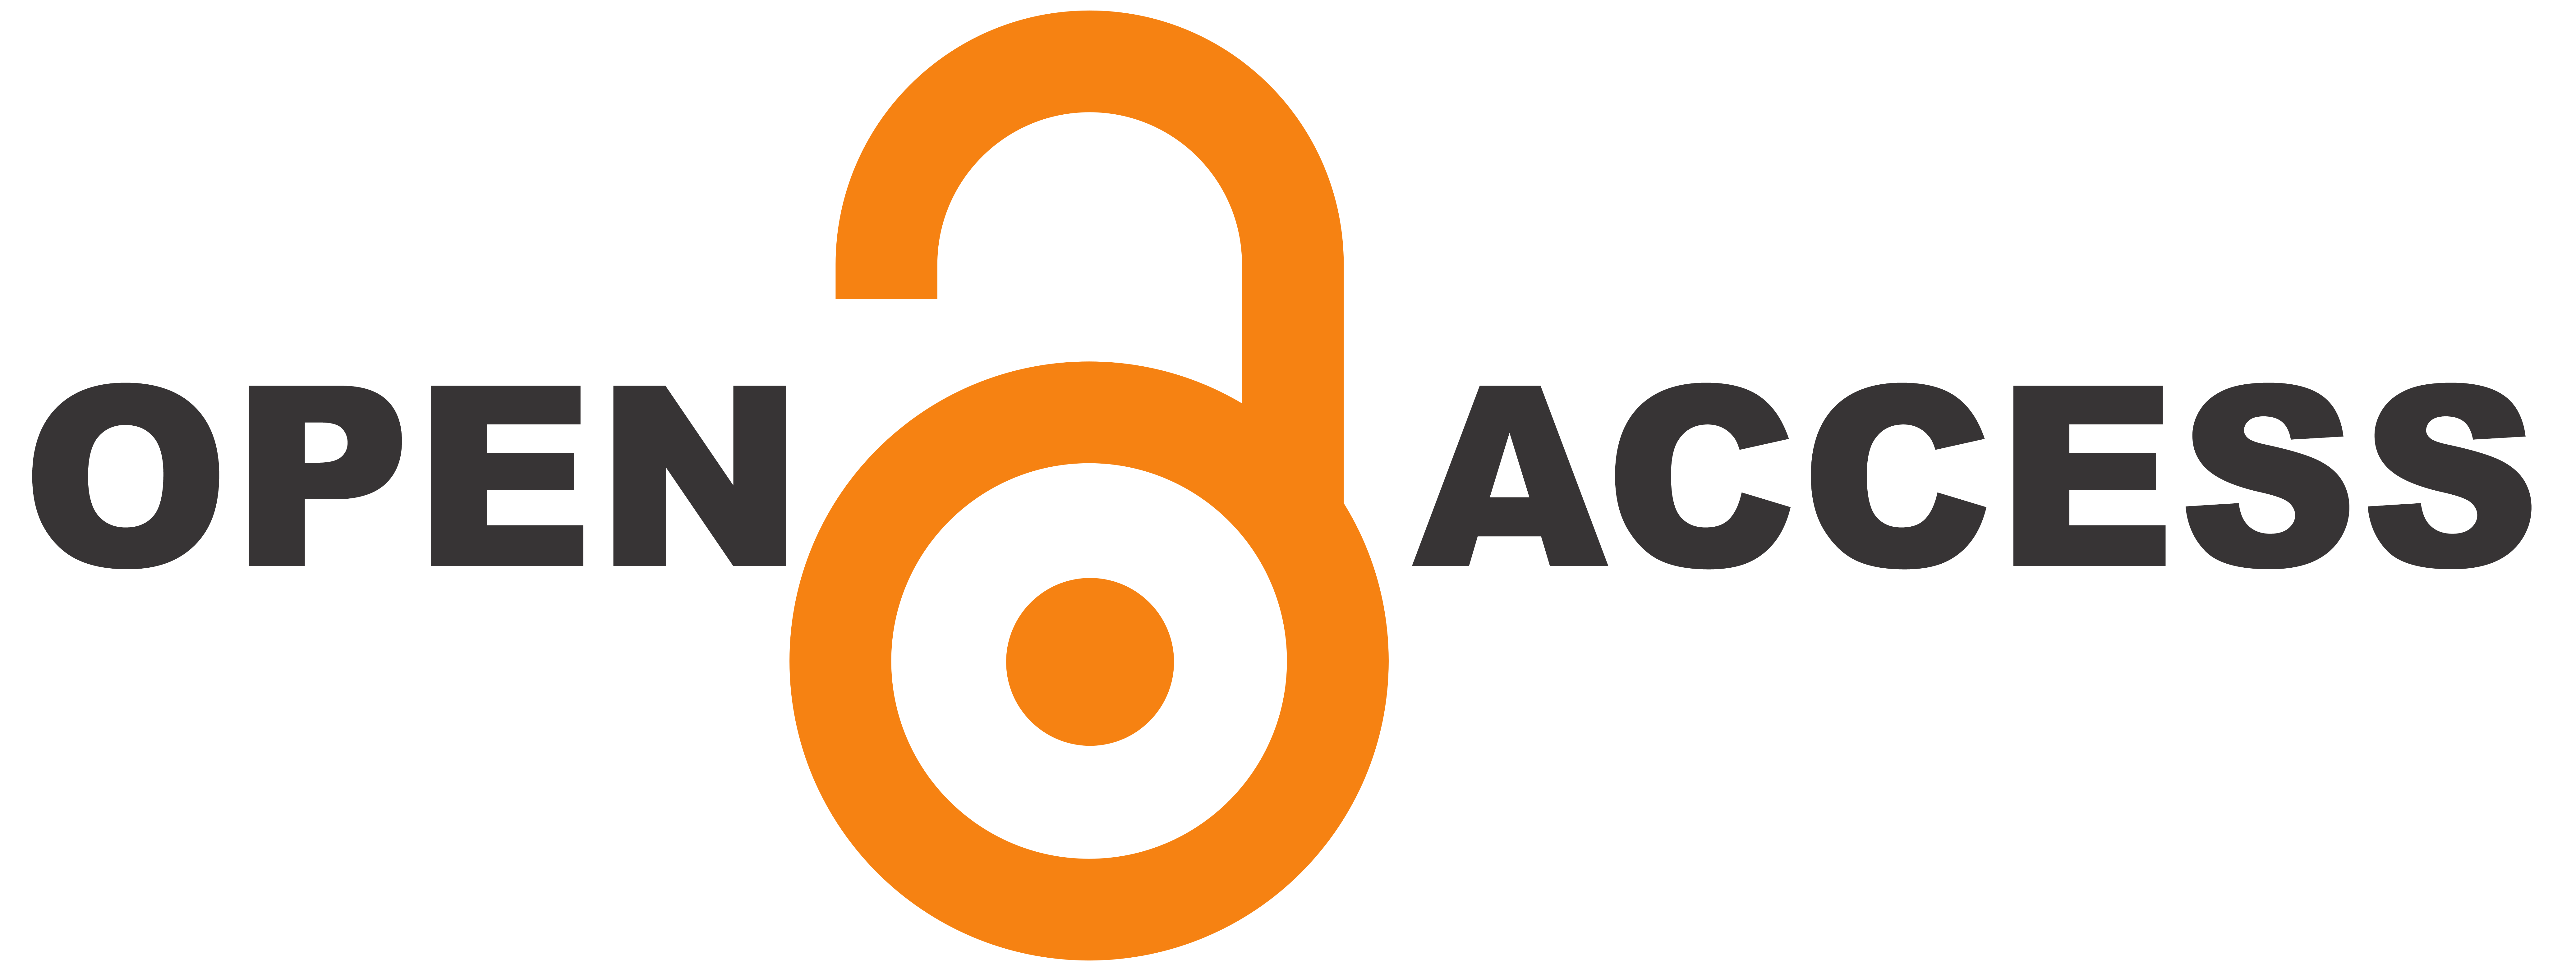 Open_Access_logo_with_dark_text_for_contrast%2C_on_transparent_background.png